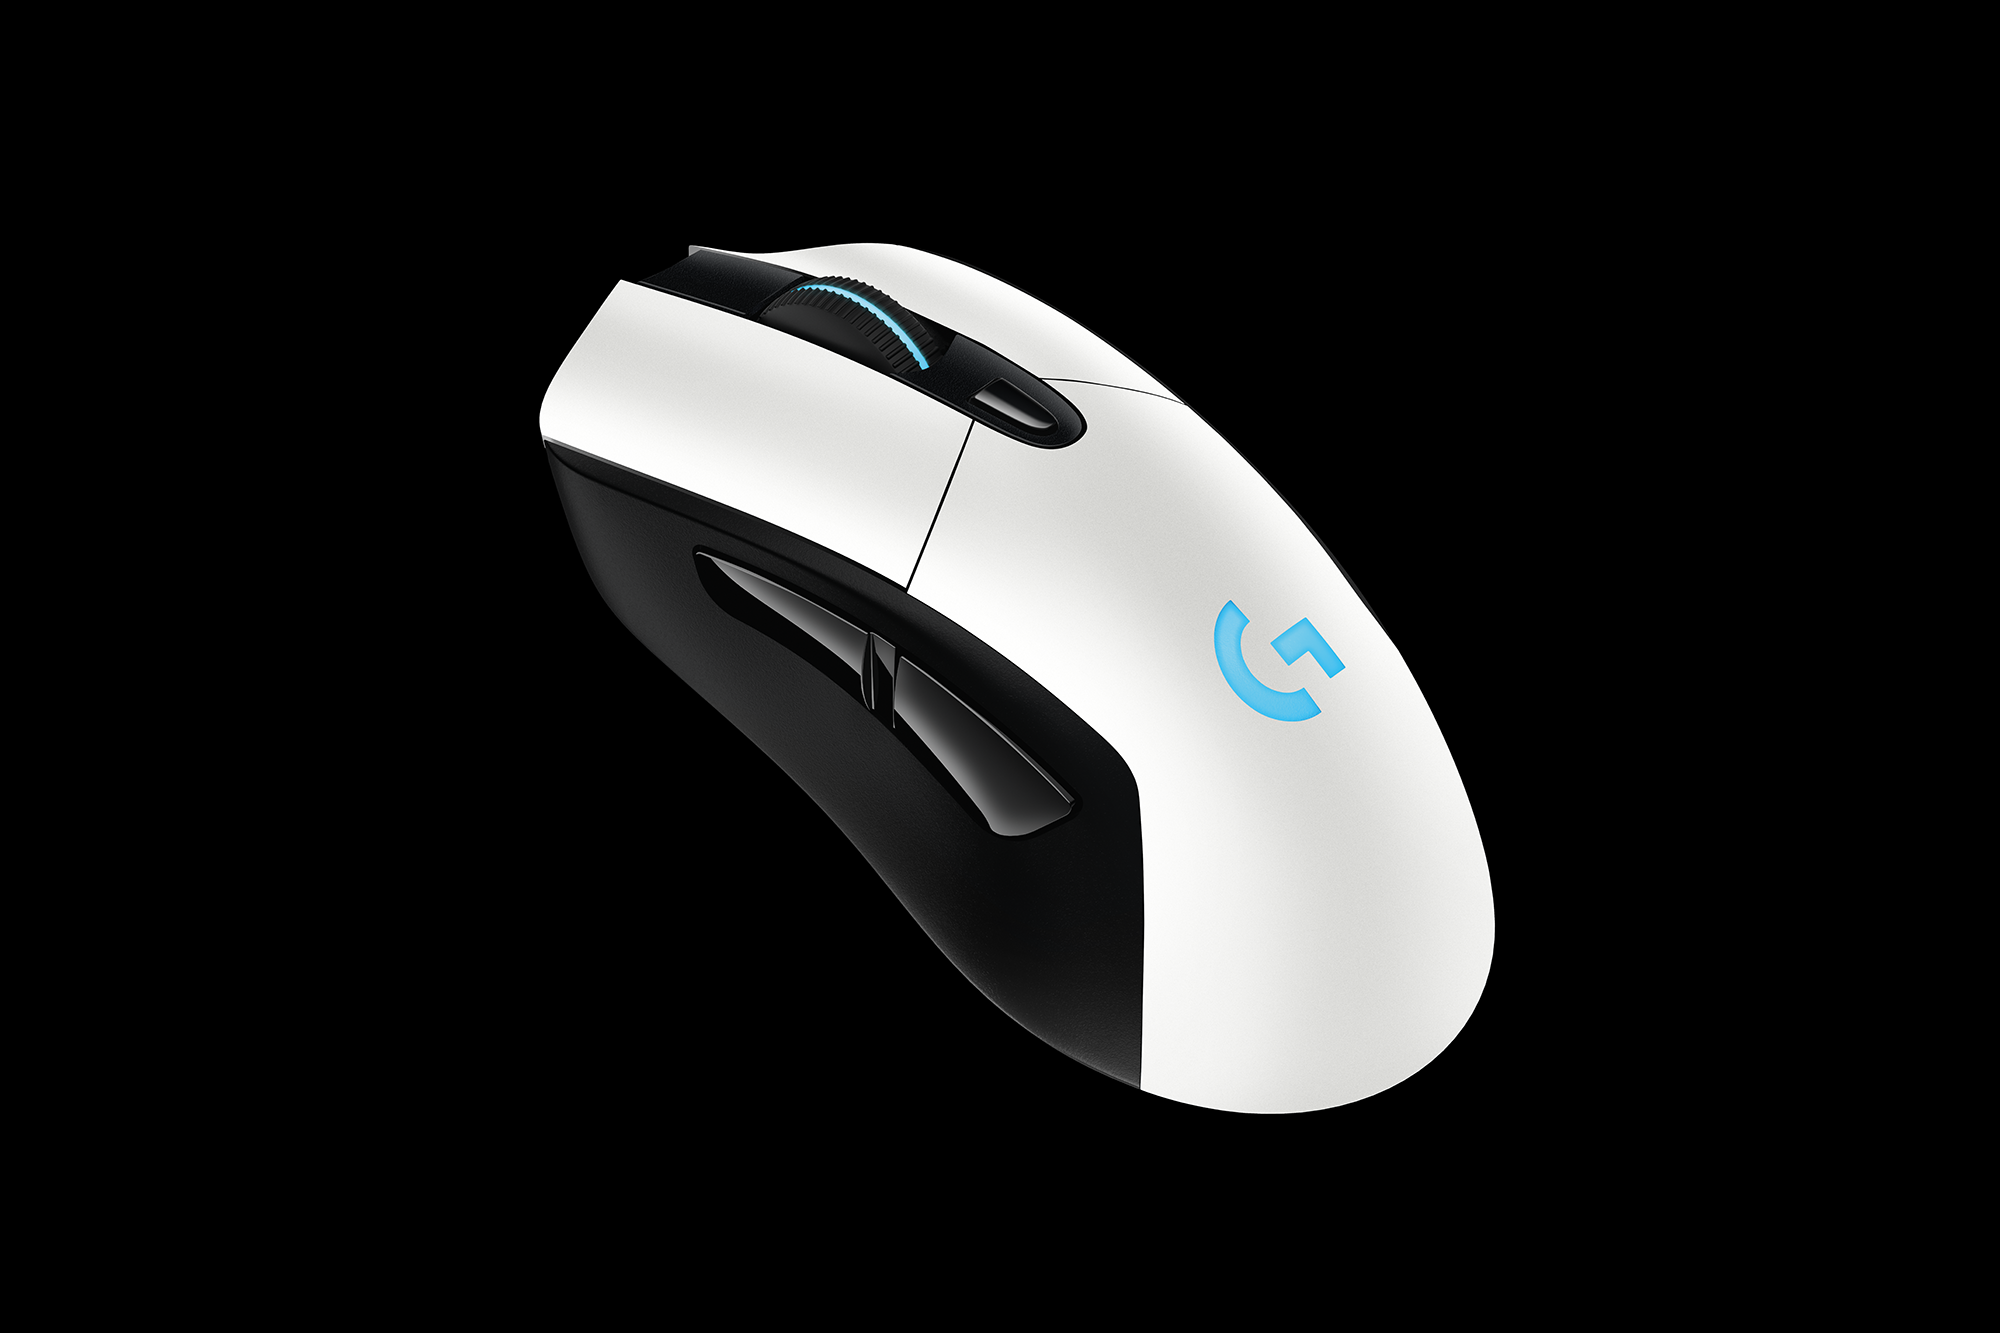 REVIEW: Logitech Delivers A Power Up To Gaming Mice - SmartHouse